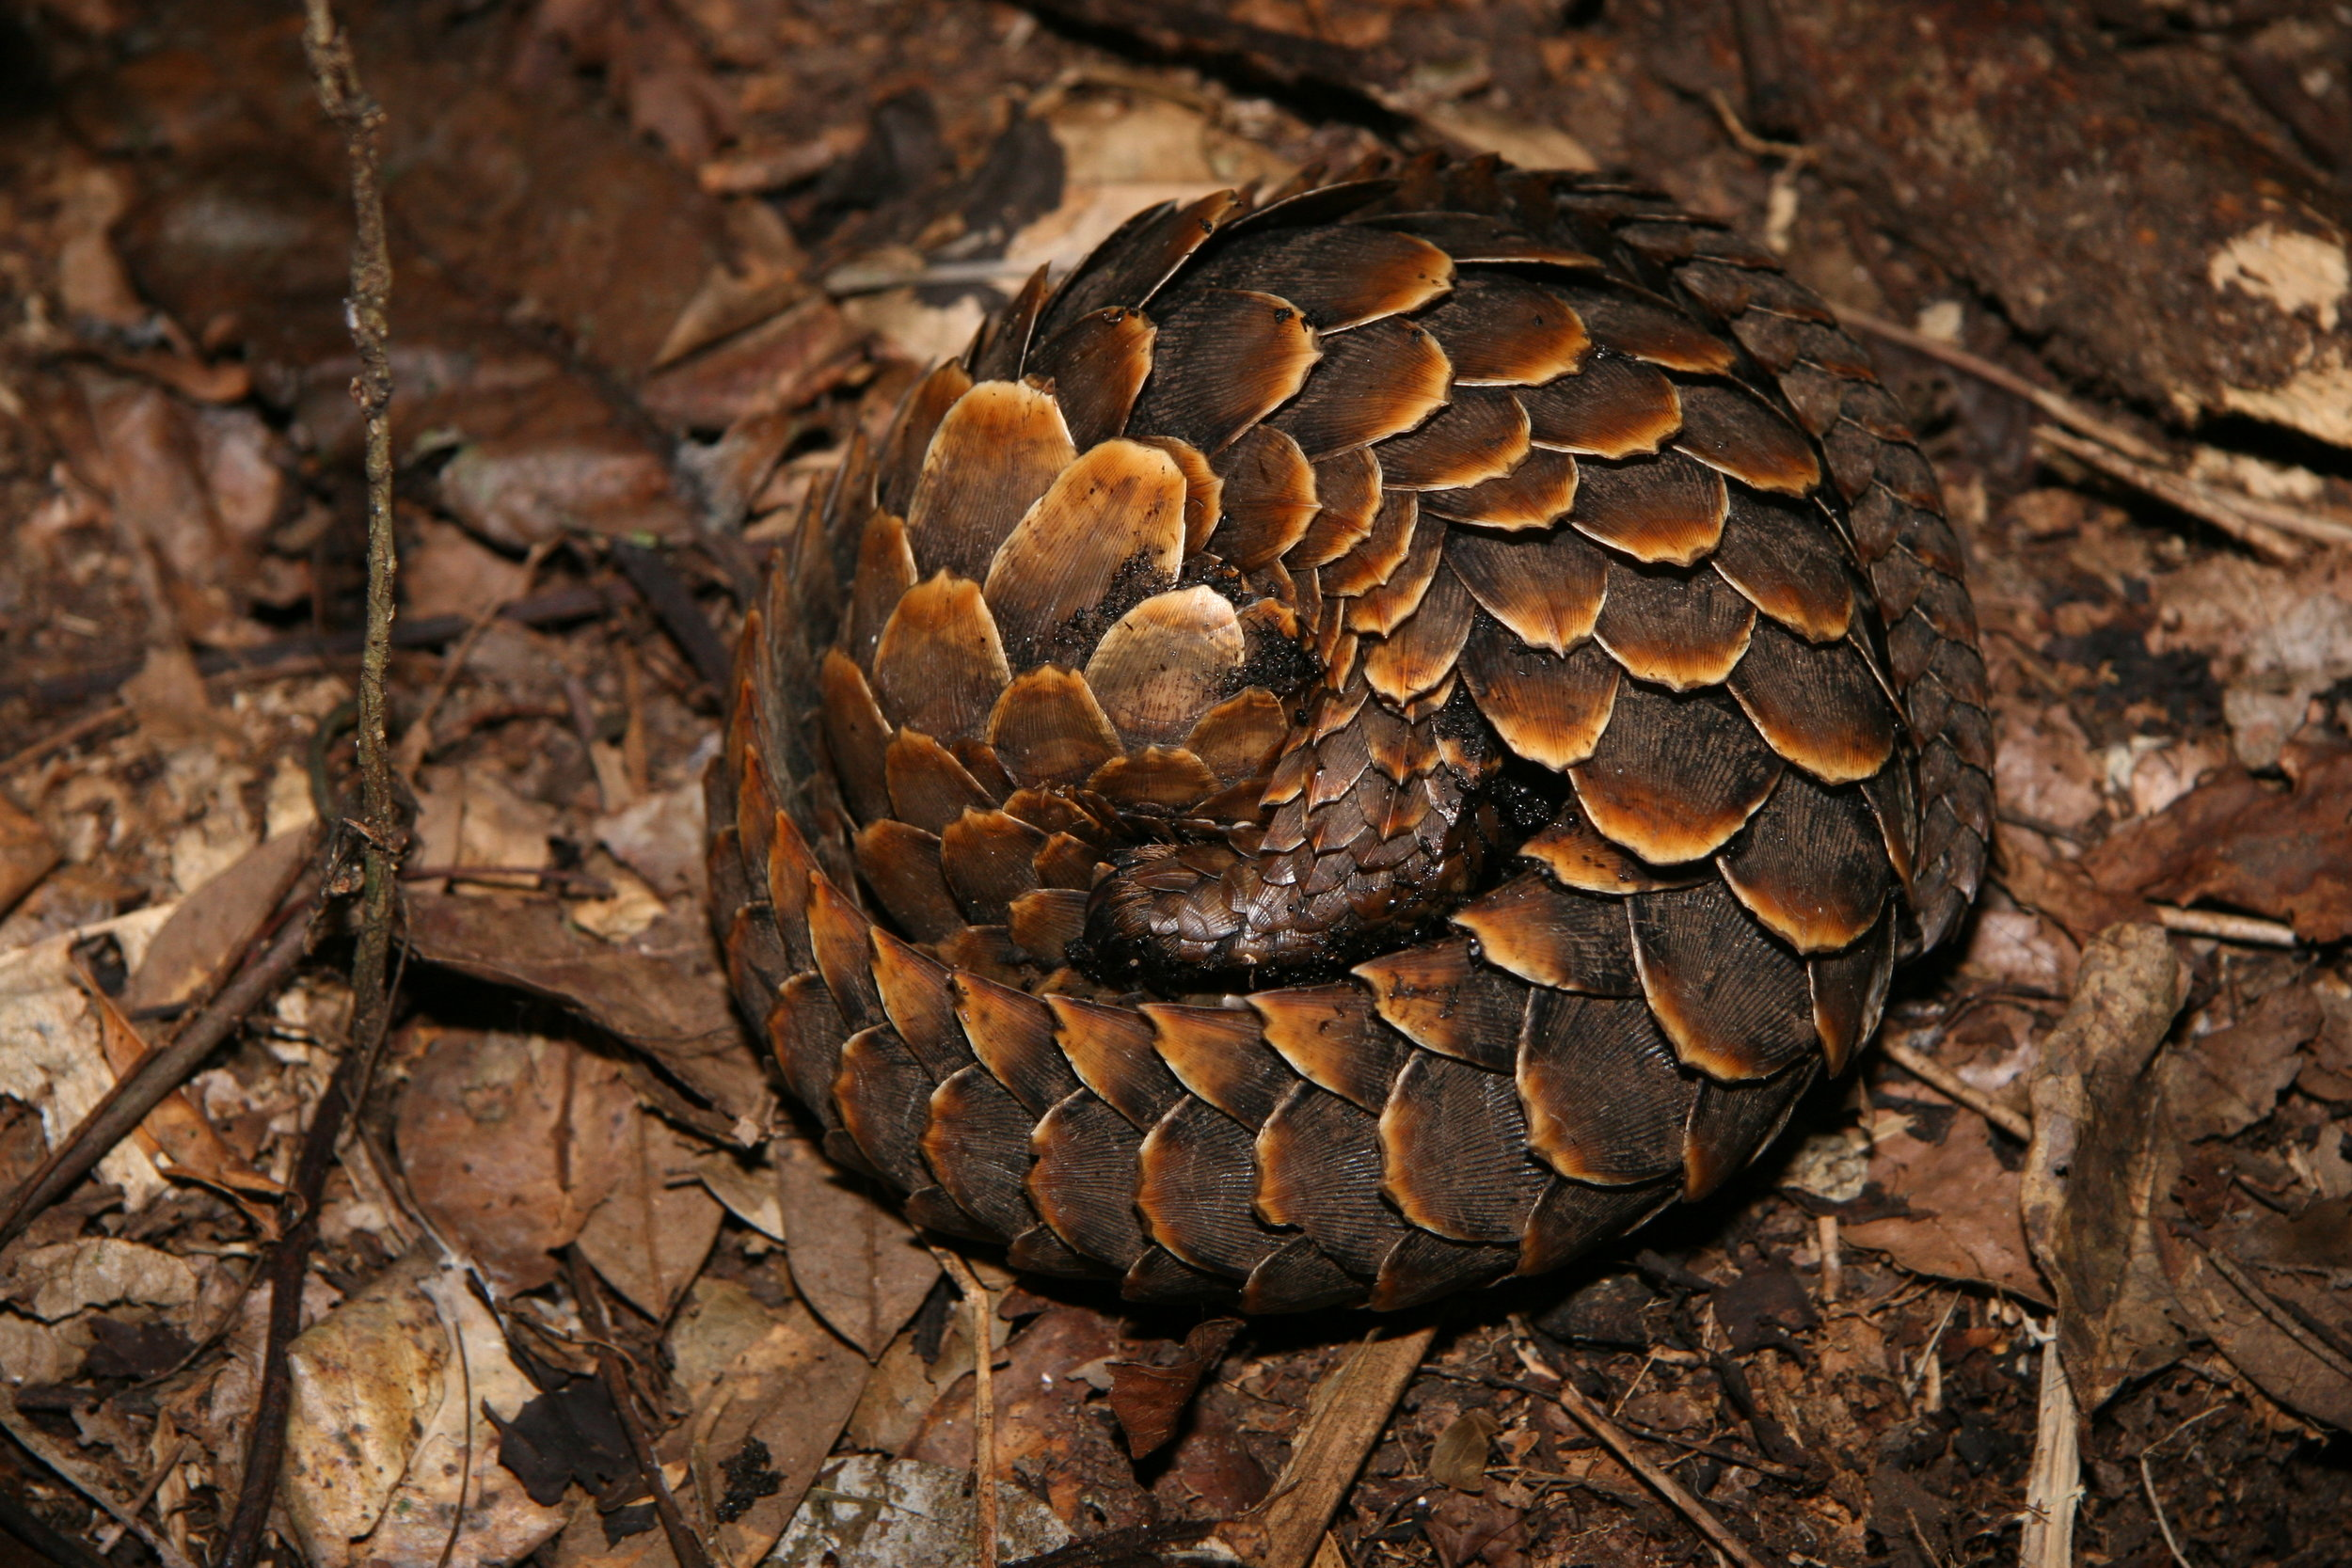 A curled up Long-tailed pangolin ( Phantaginus tetradactyla ). Aren't they just the cutest!